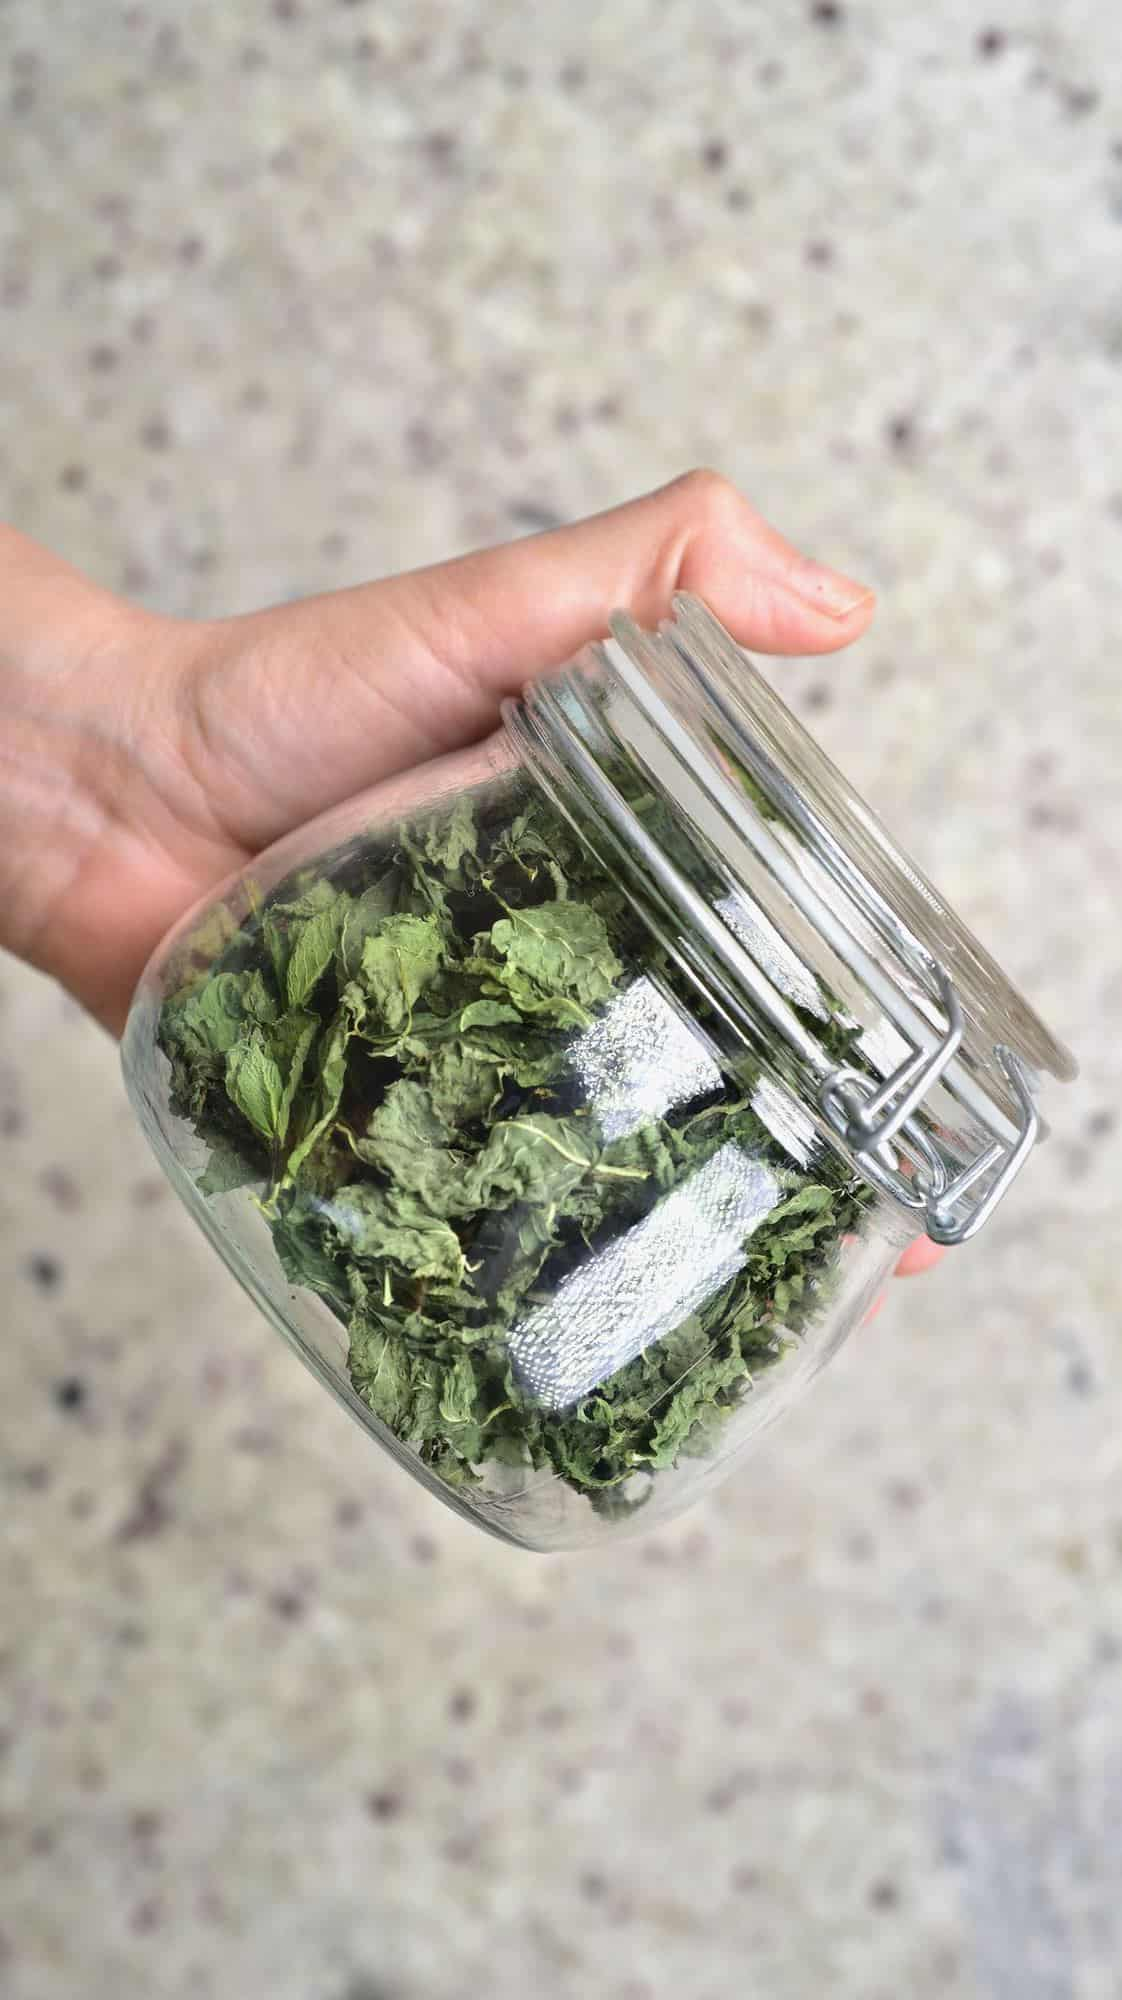 A hand holding a jar with dried mint leaves